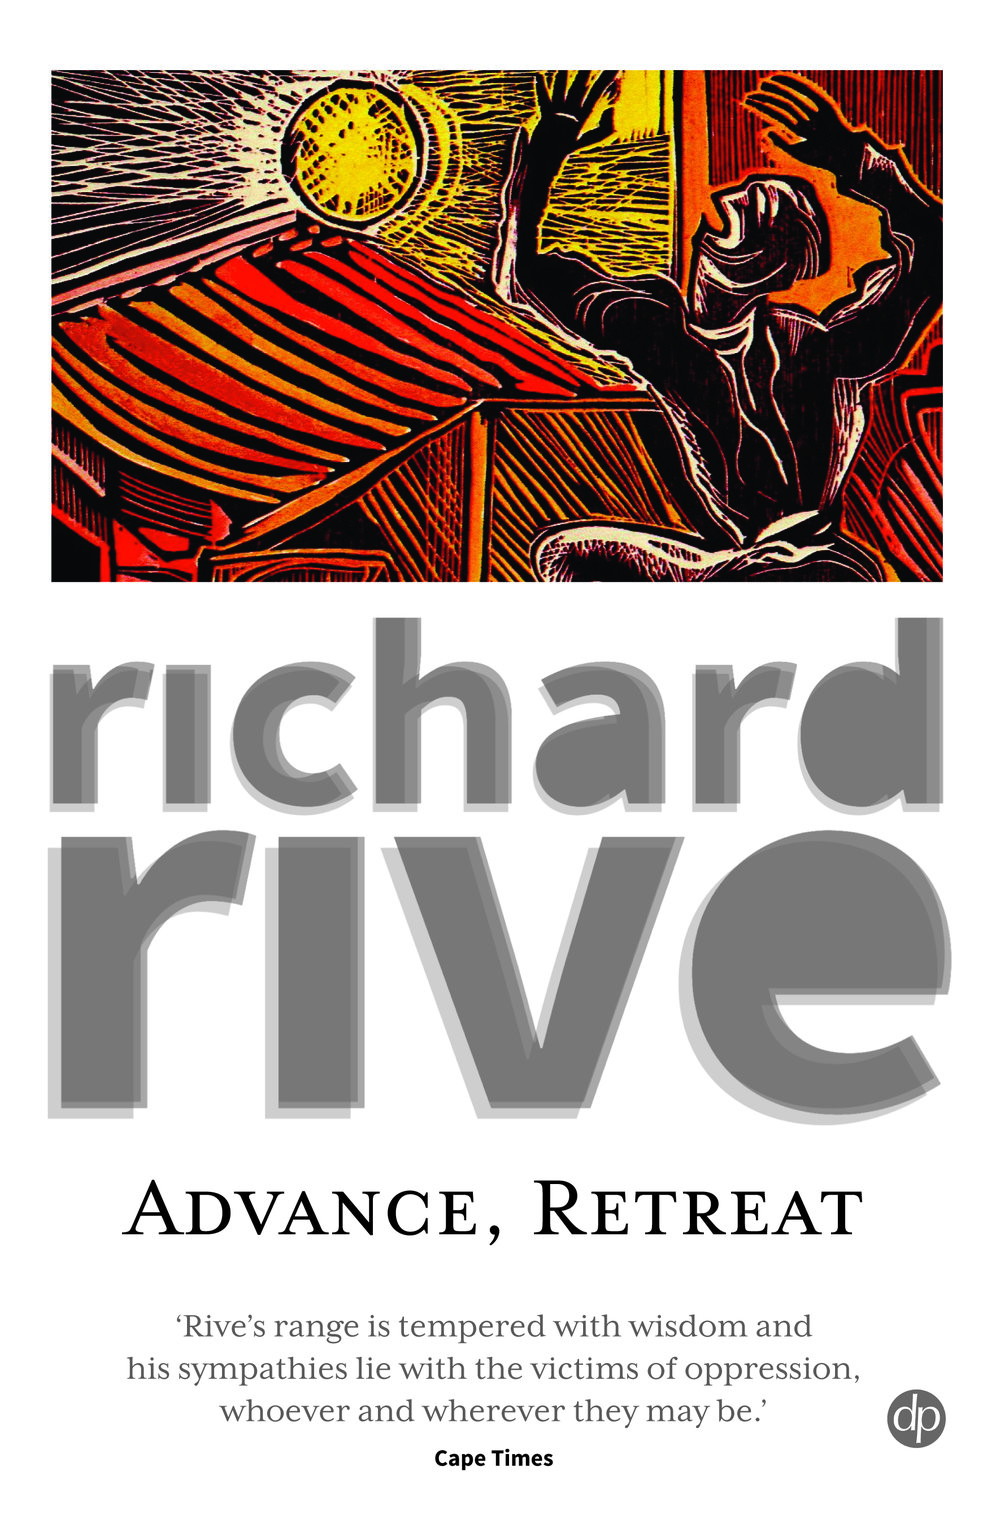 Advance, Retreat - Richard Rive